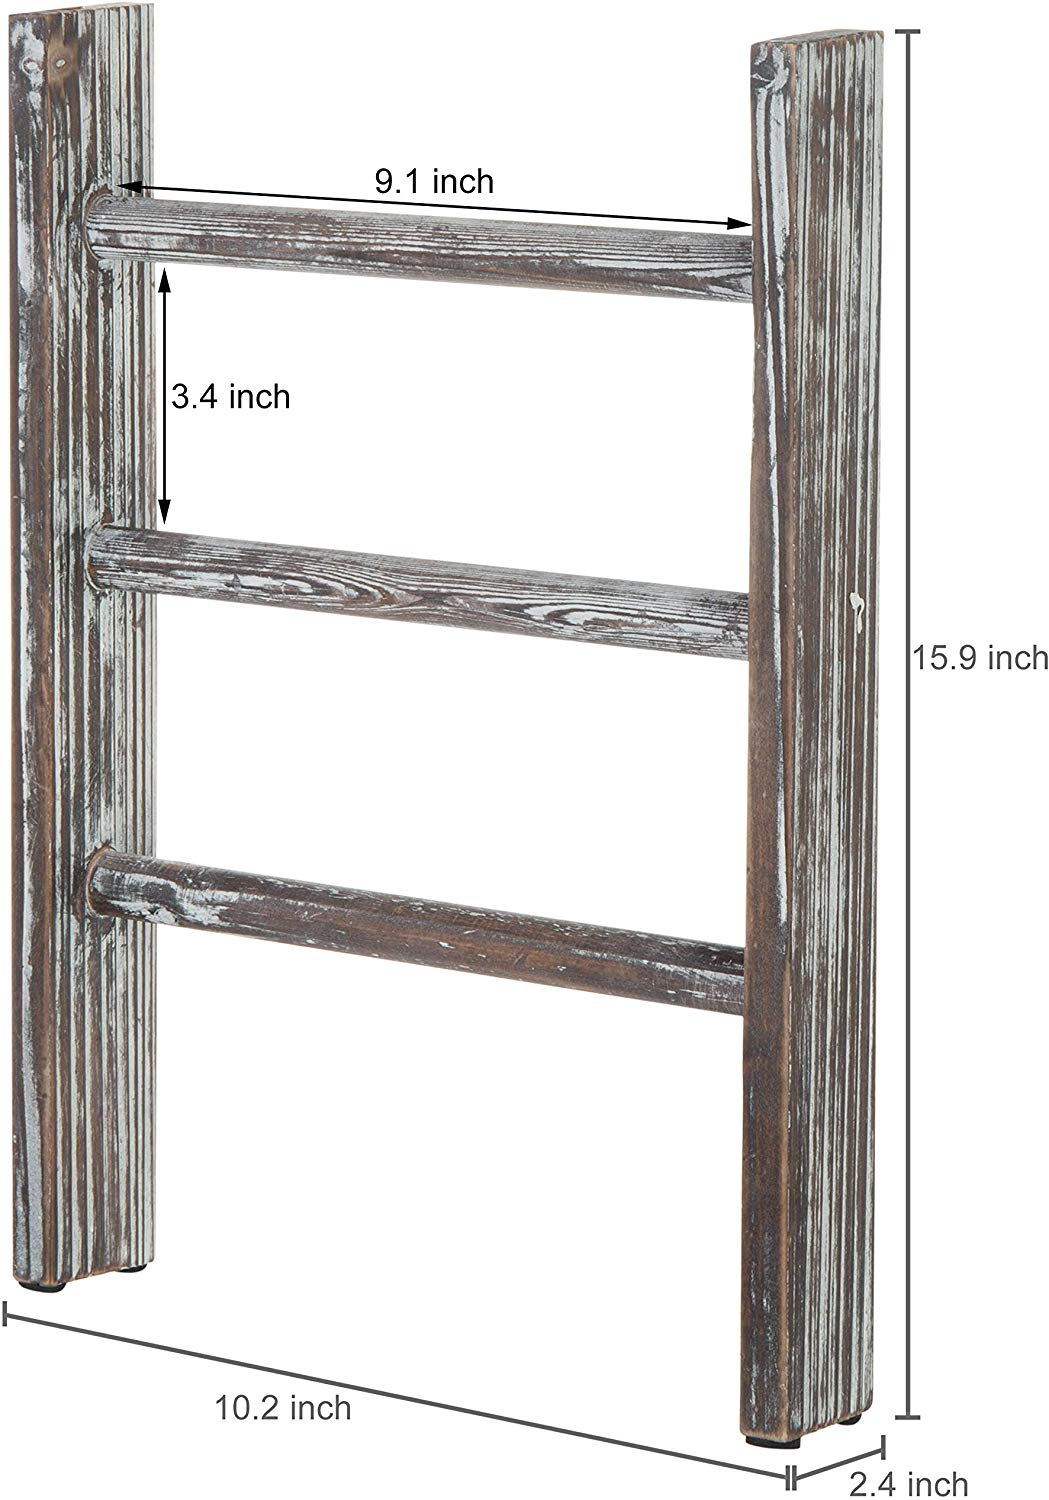 ustic Torched Wood Countertop 16-Inch Ladder Kitchen Towel Rack